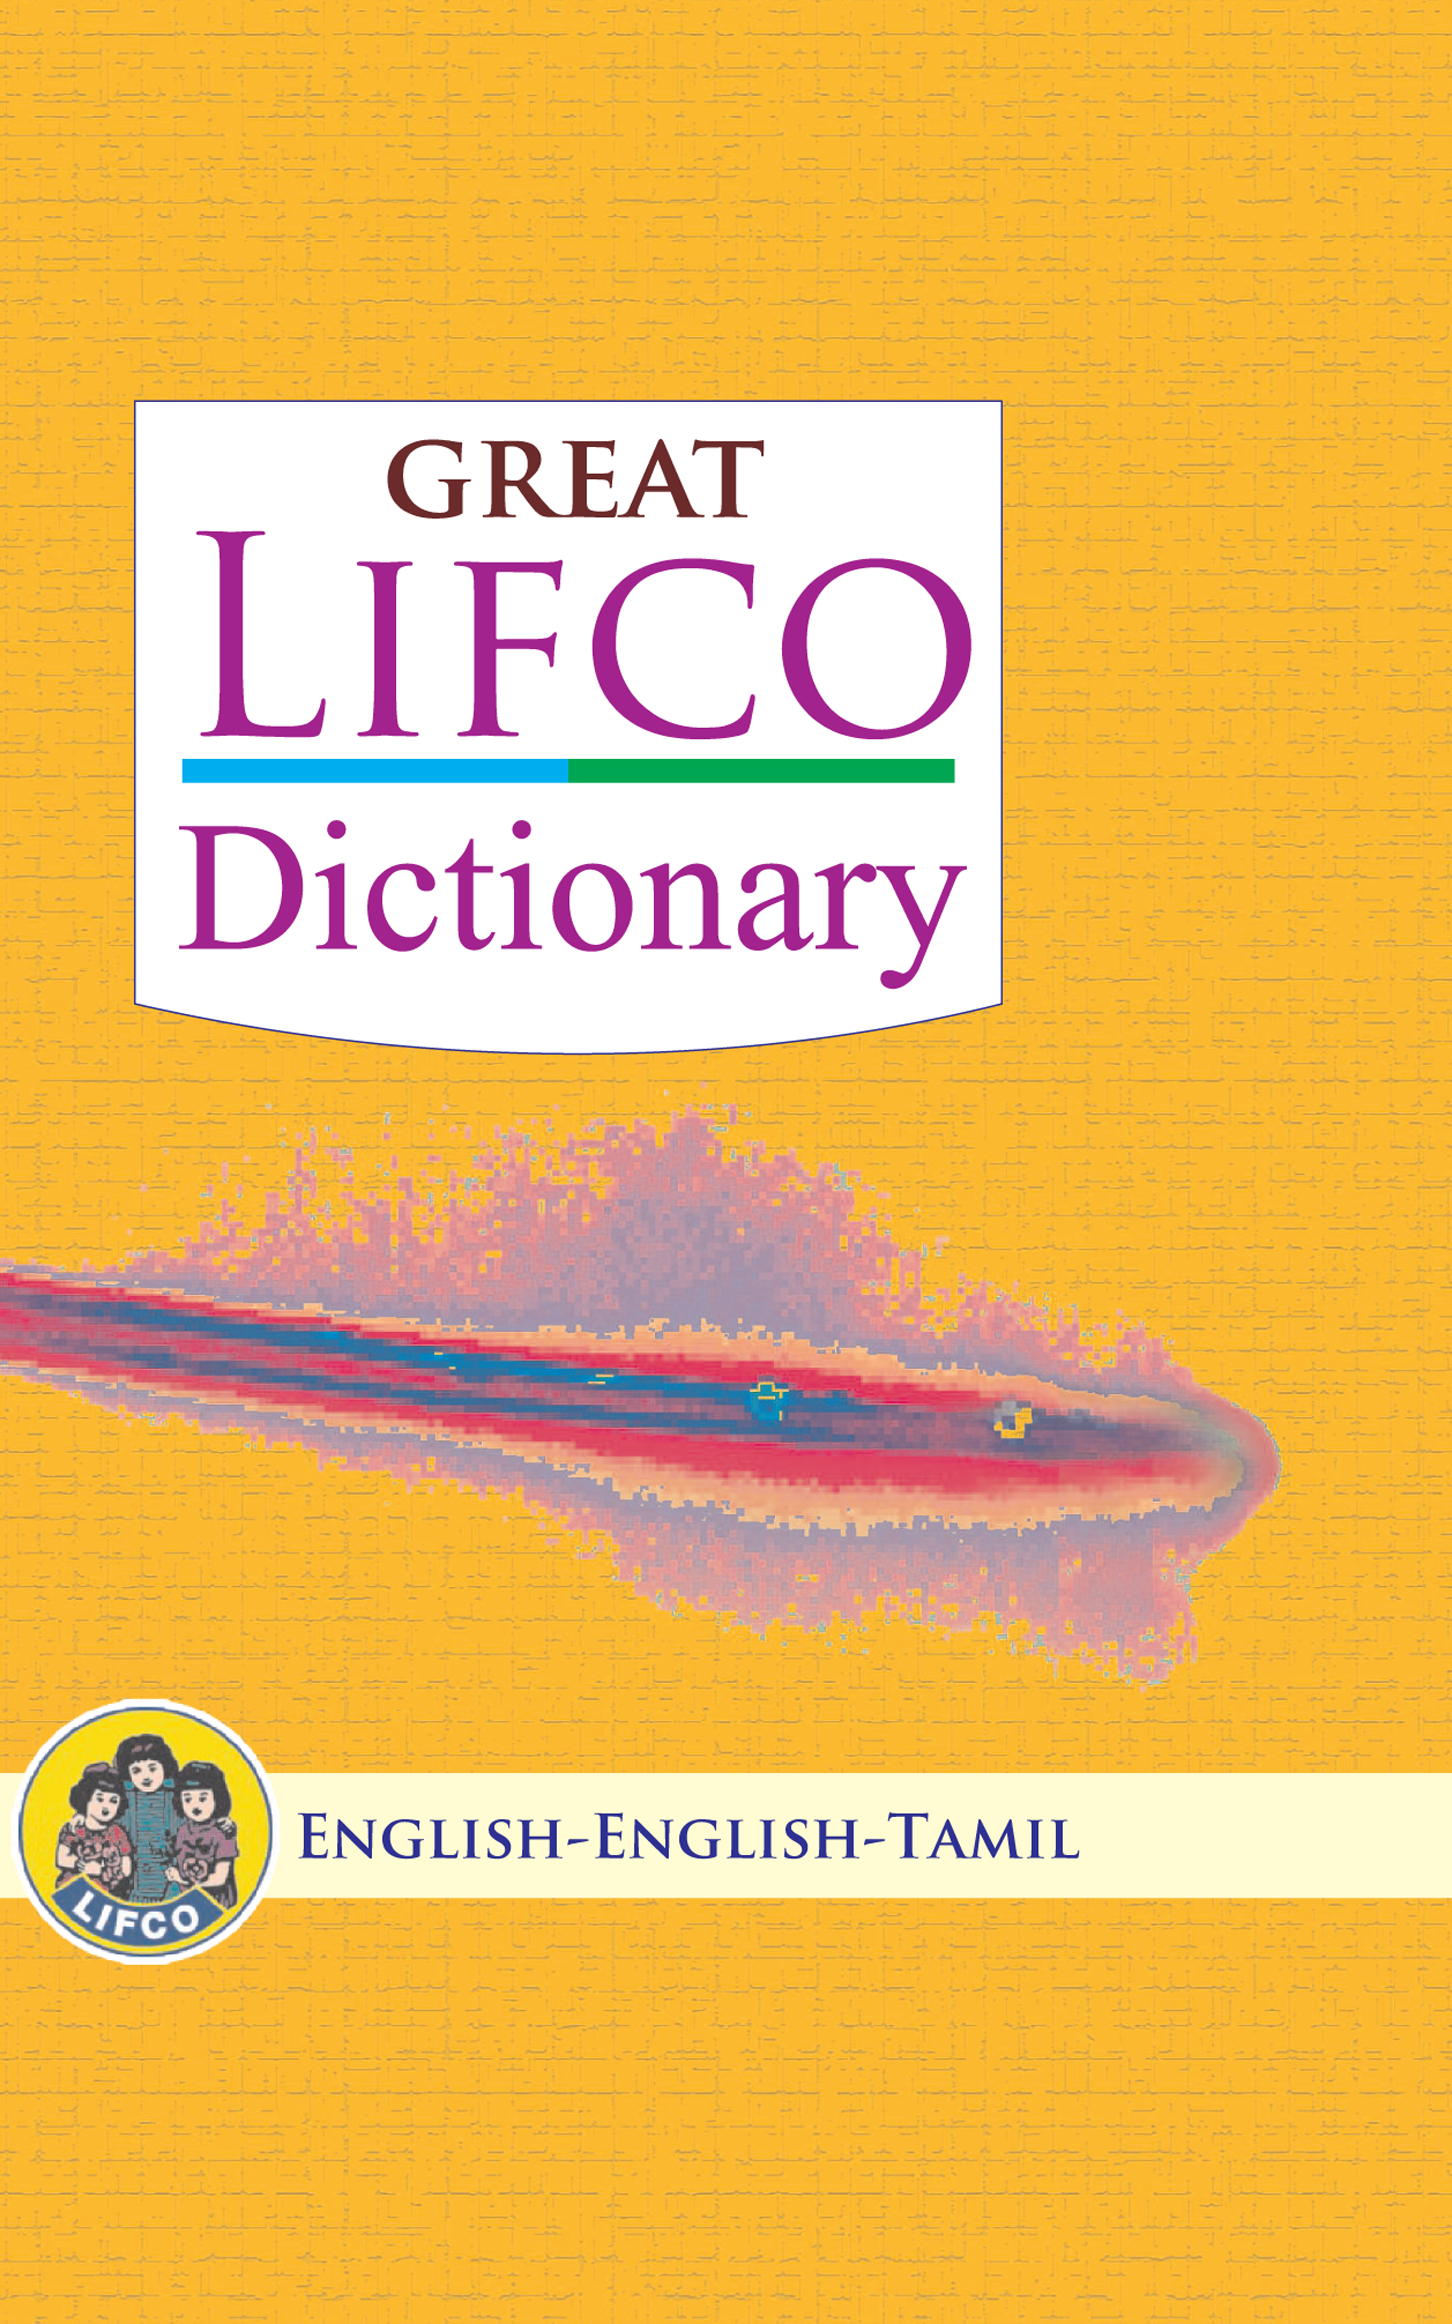 The Great Lifco Dictionary – English-English-Tamil